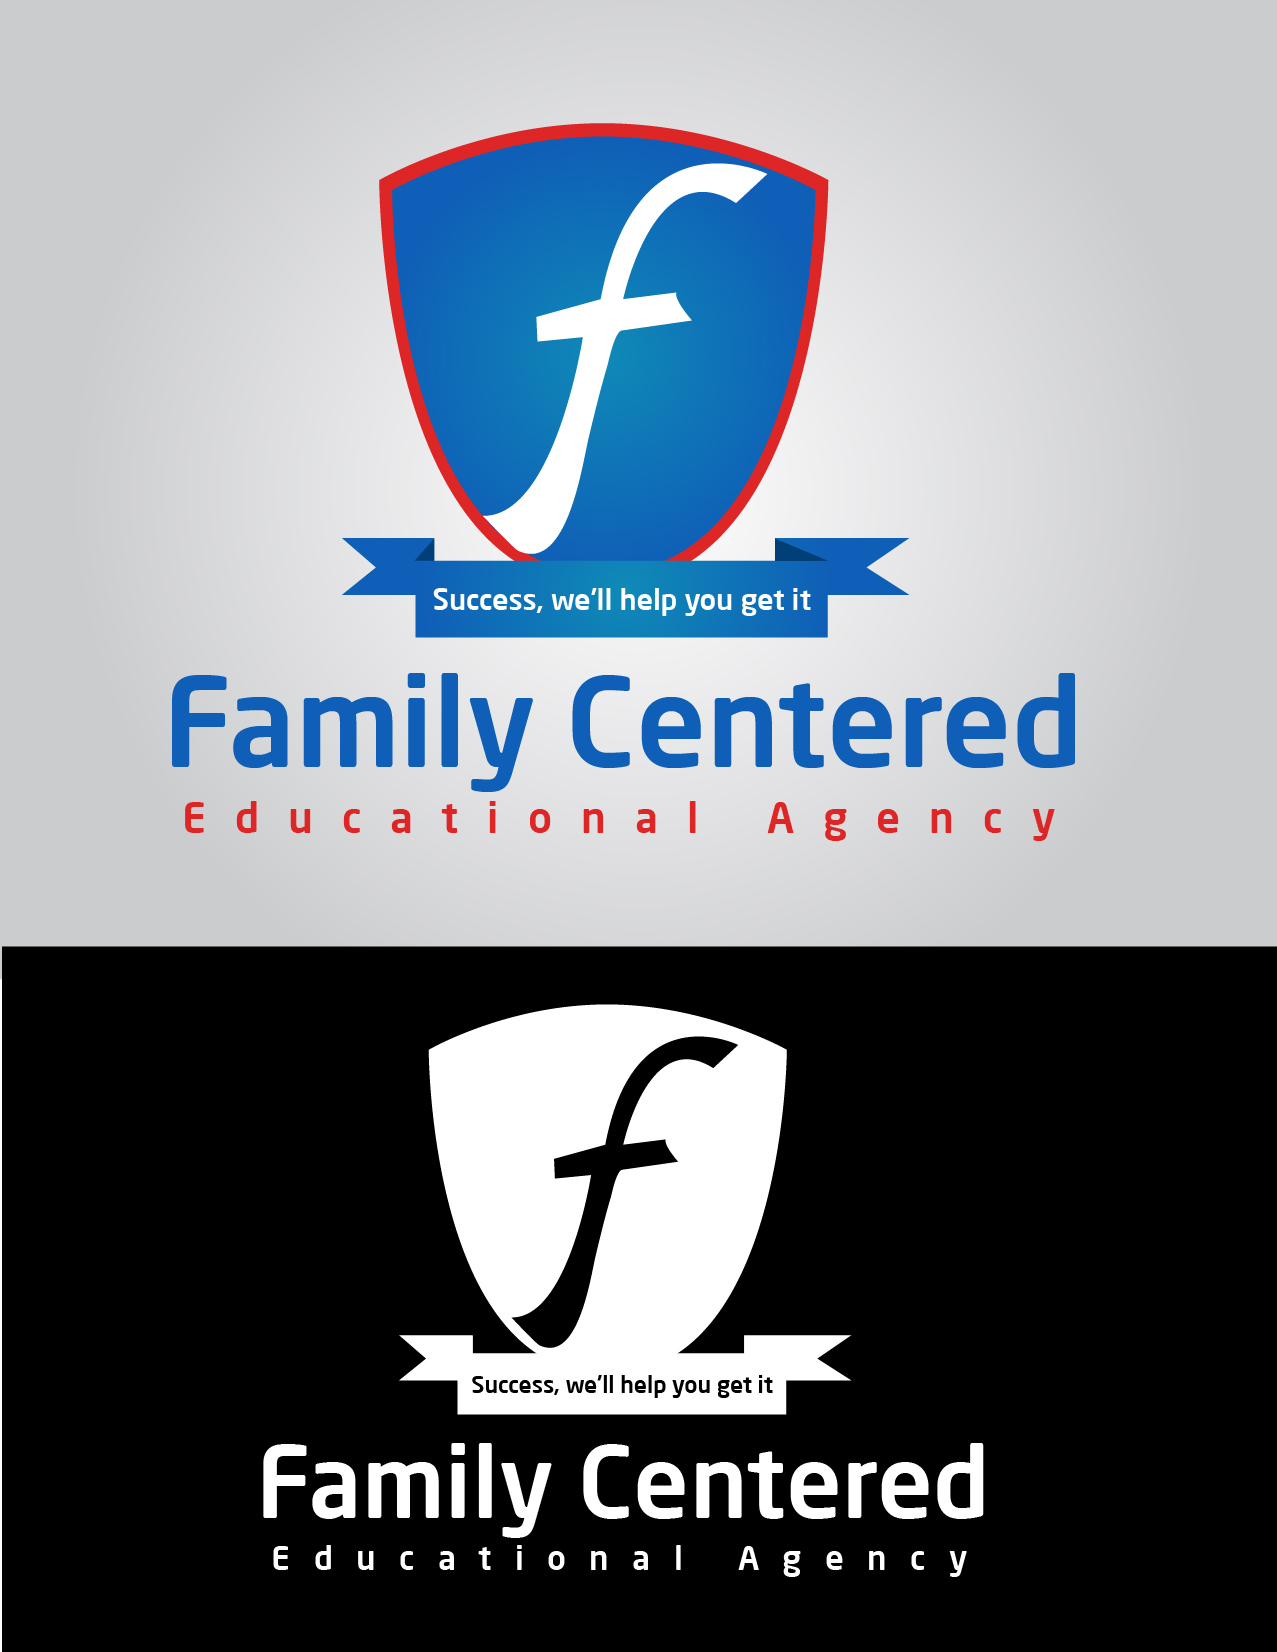 Logo Design by mediaproductionart - Entry No. 30 in the Logo Design Contest Captivating Logo Design for Family Centered Educational Agency.